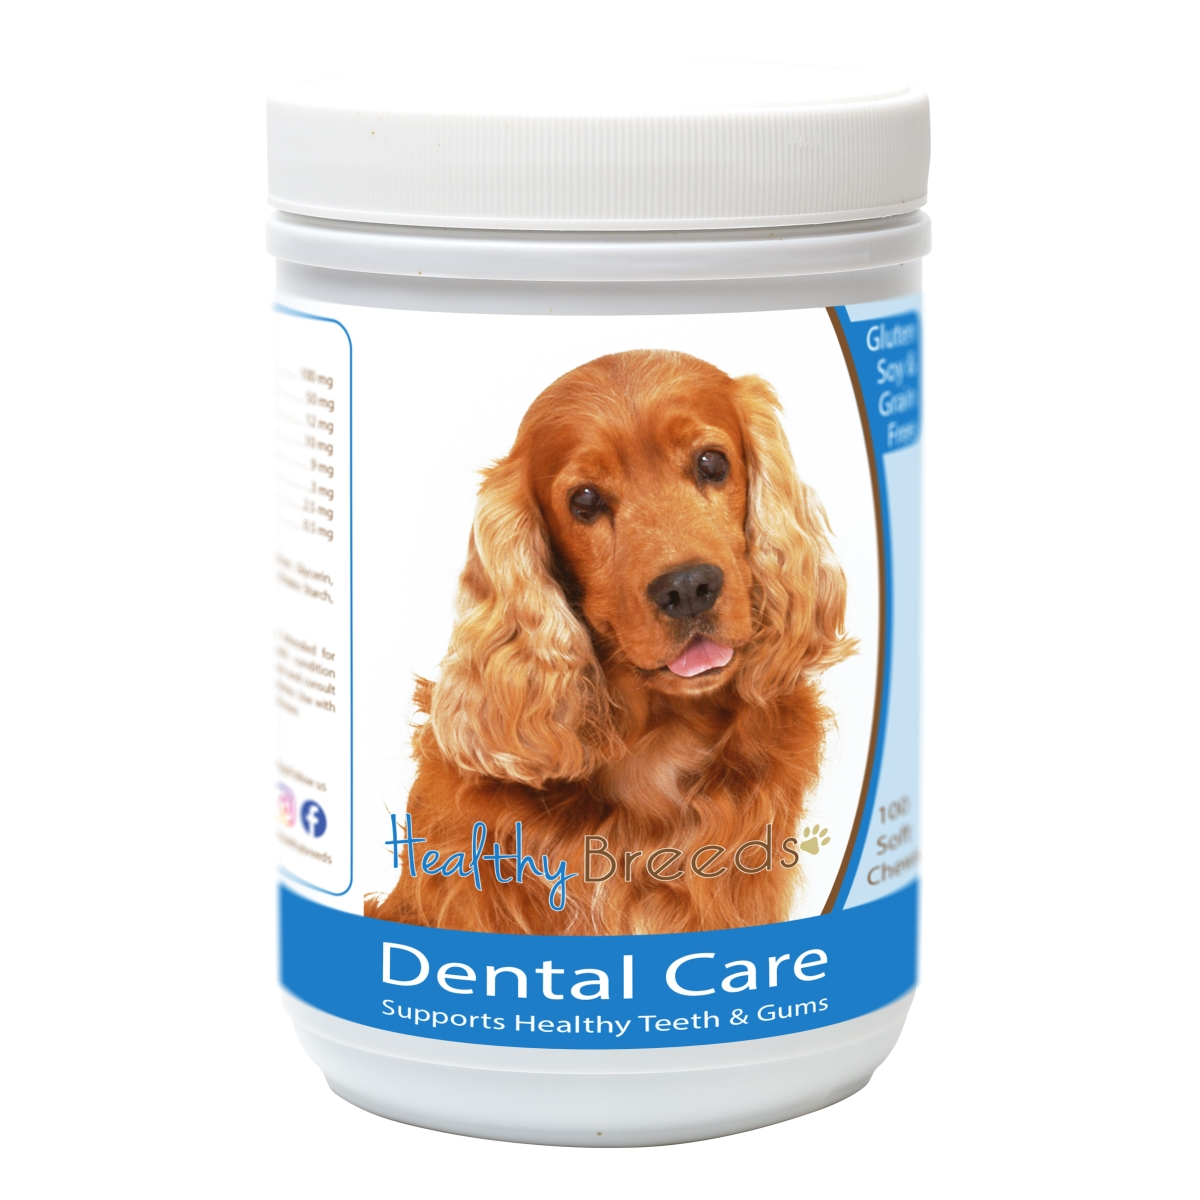 Healthy Breeds 840235163084 Cocker Spaniel Breath Care Soft Chews for Dogs - 60 Count